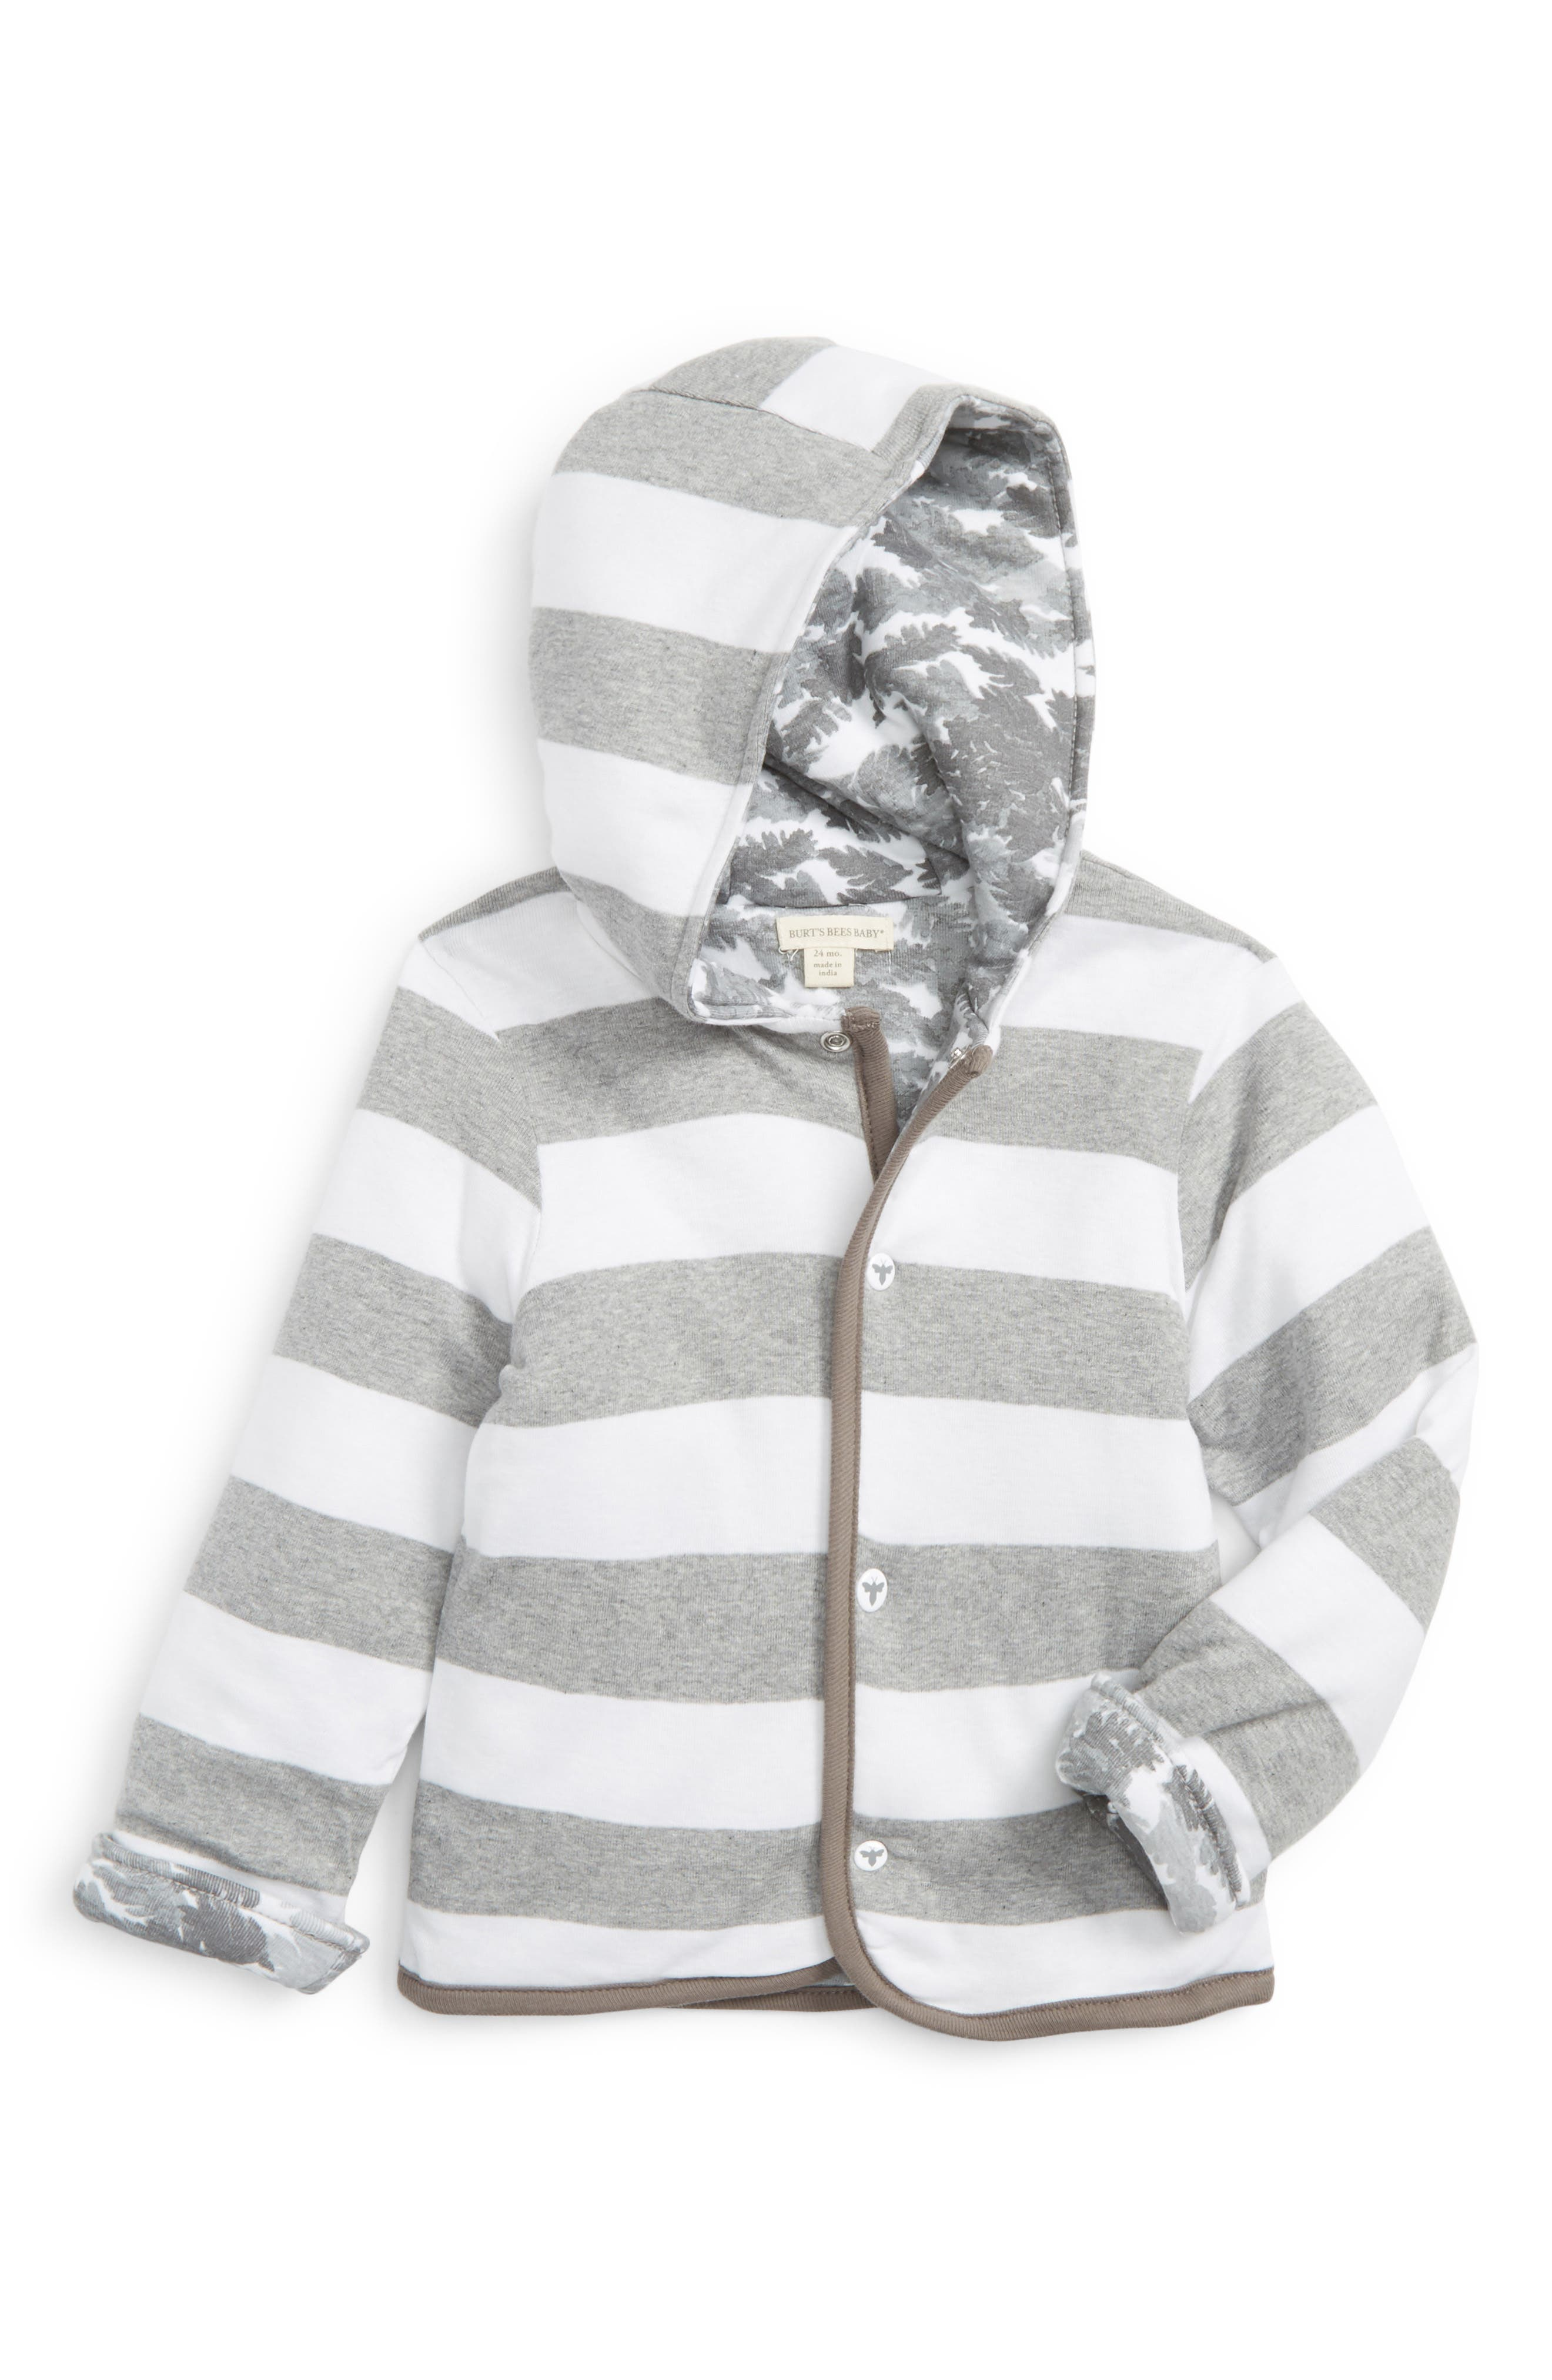 Burt's Bees Reversible Organic Cotton Hoodie,                             Main thumbnail 1, color,                             Heather Grey